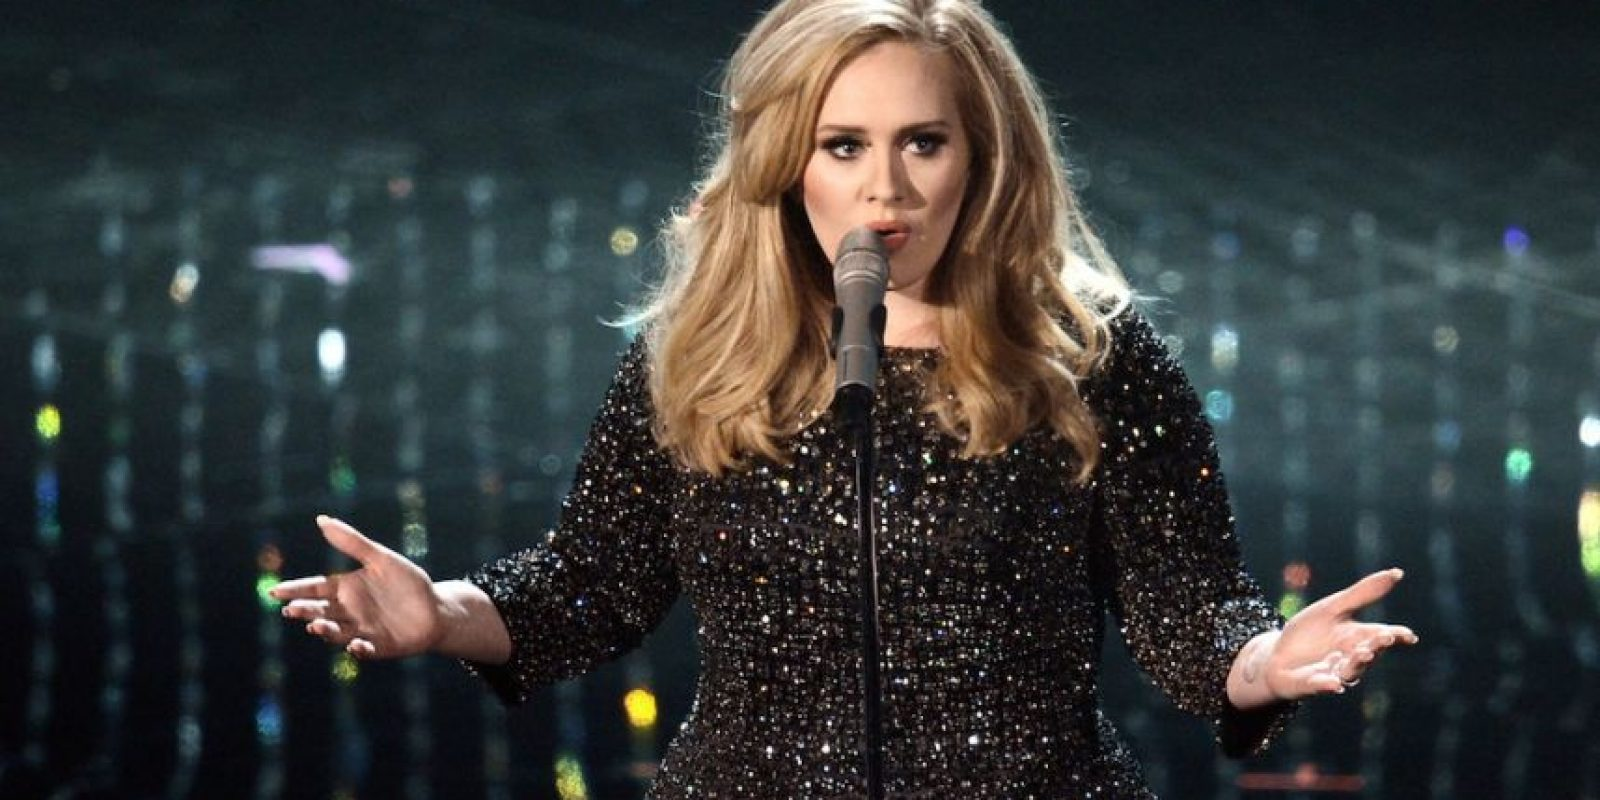 Adele – cantante británica. Foto: Getty Images